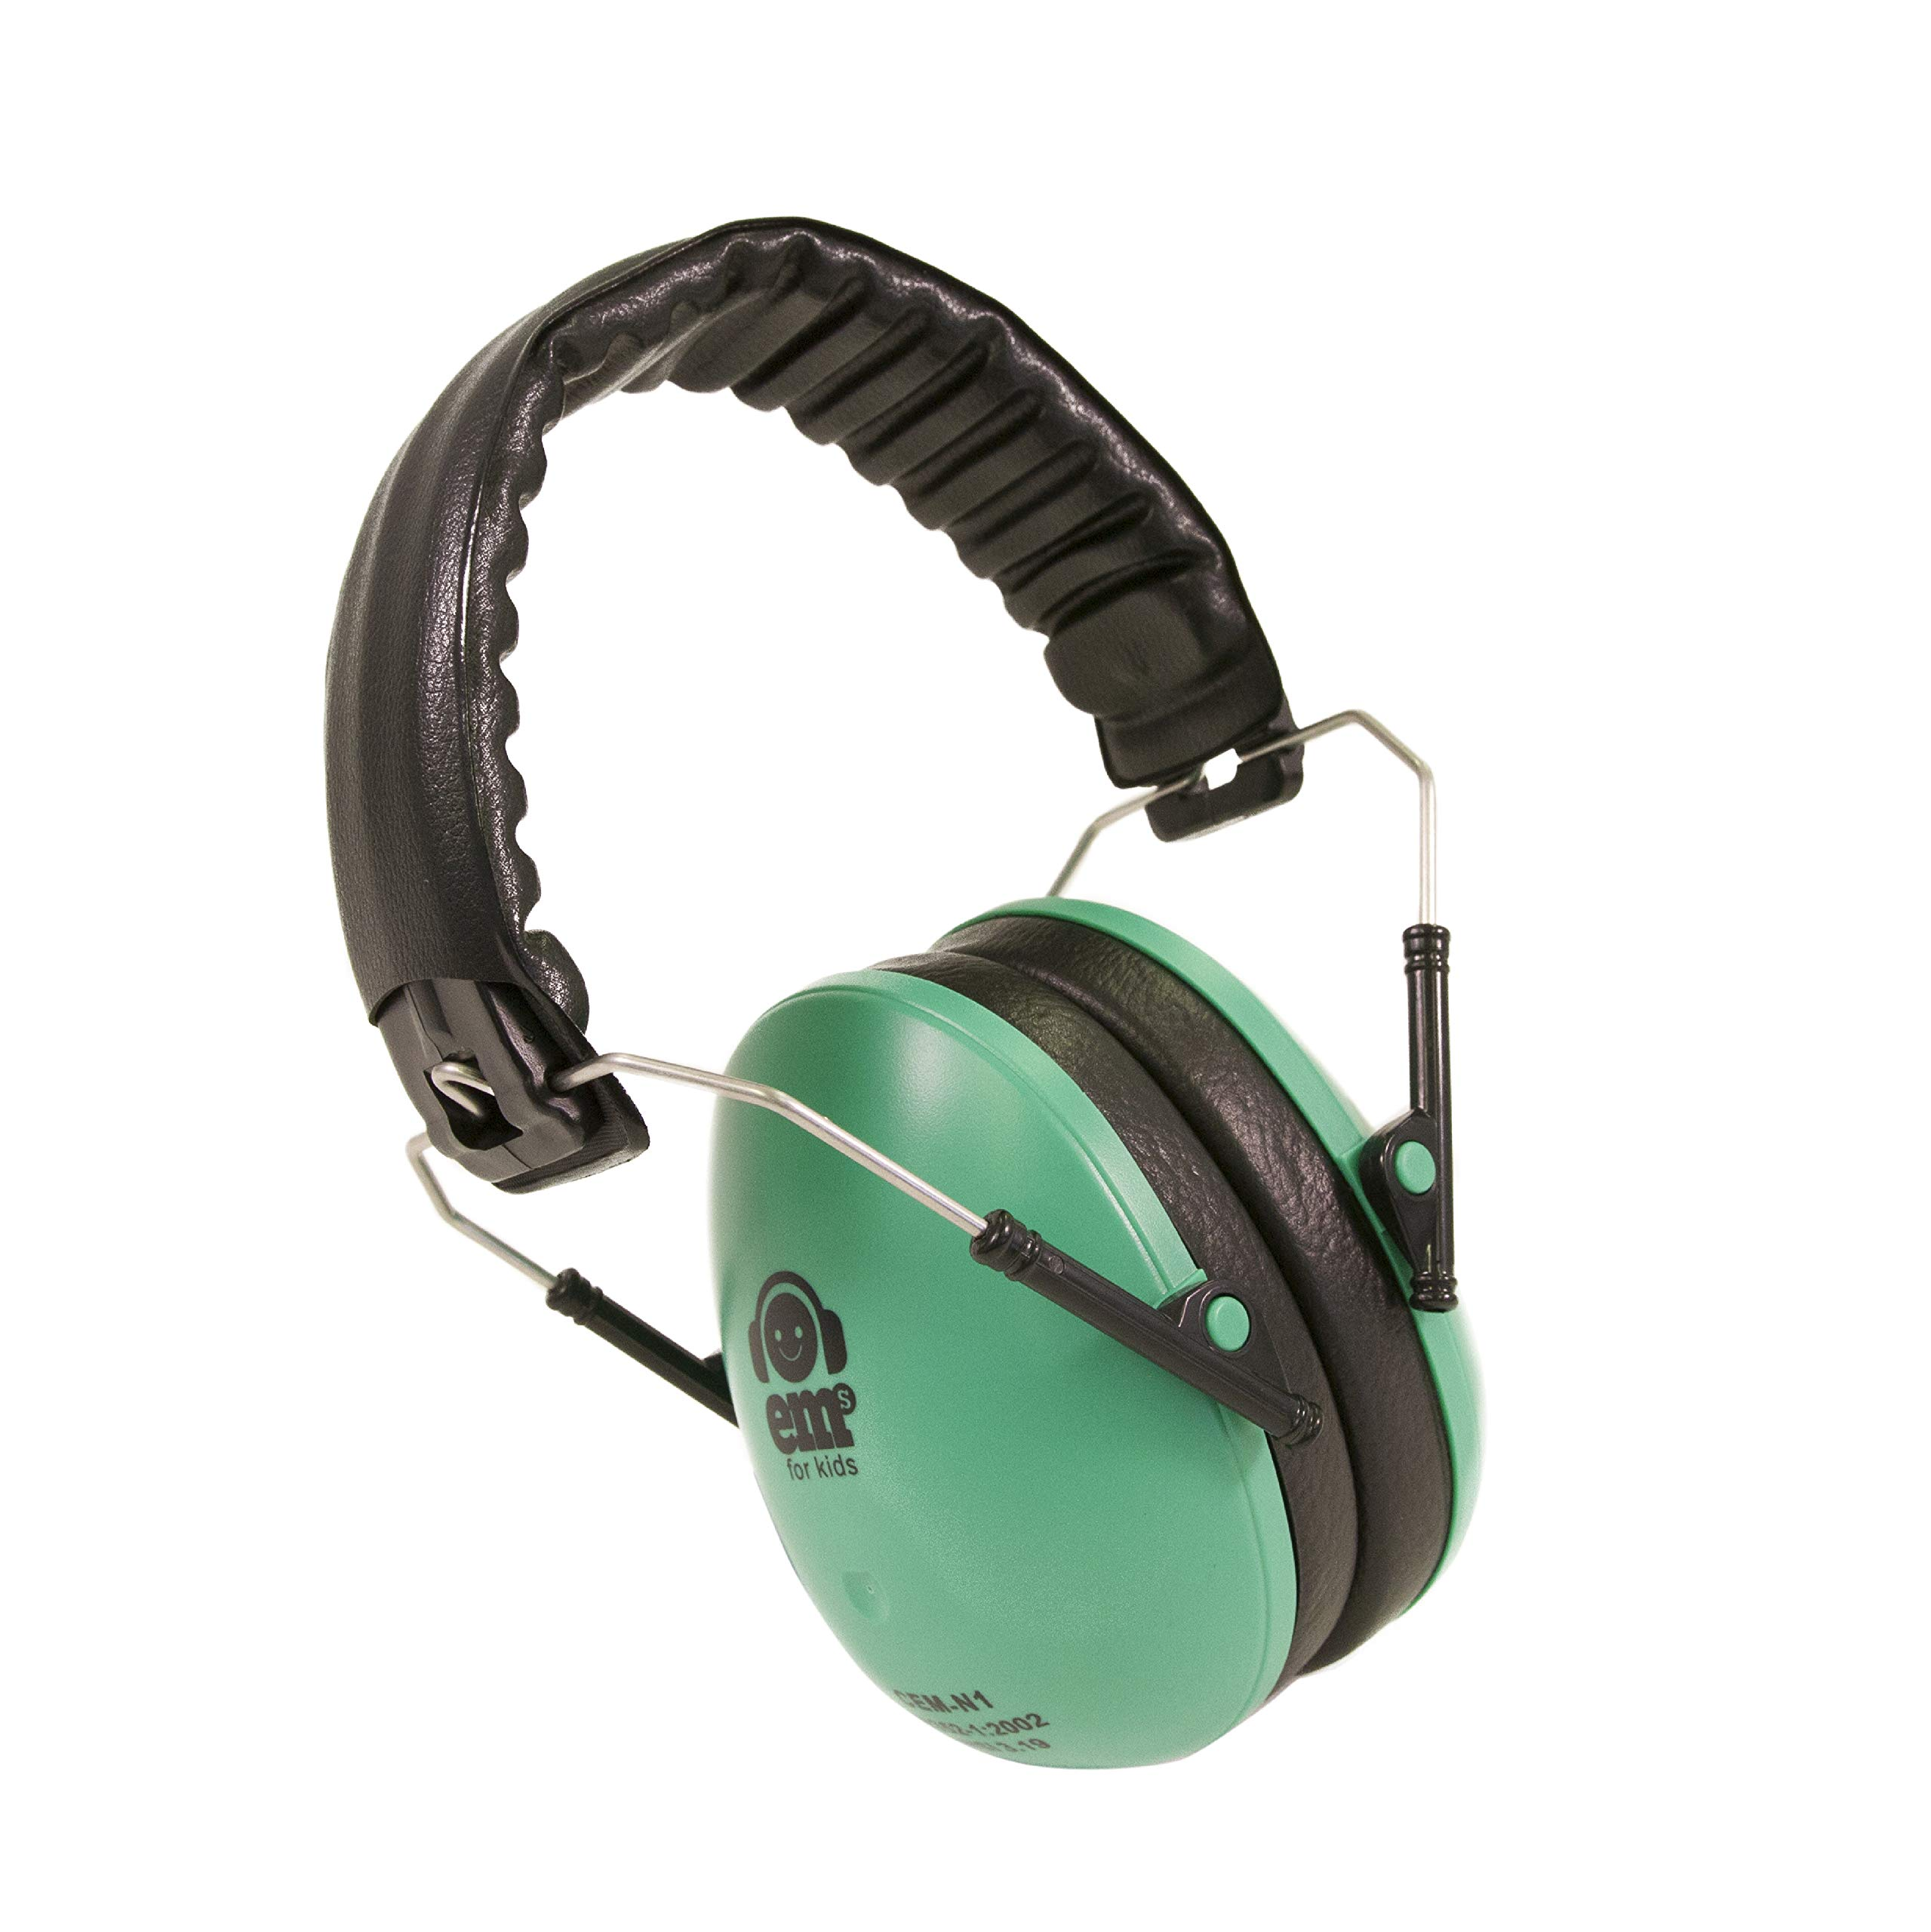 Ems for Kids Earmuffs - Mint. The Original Folding Children's Earmuff Since 2007. Use at Loud Events Including NASCAR, air Shows, Concerts, Festivals and More!